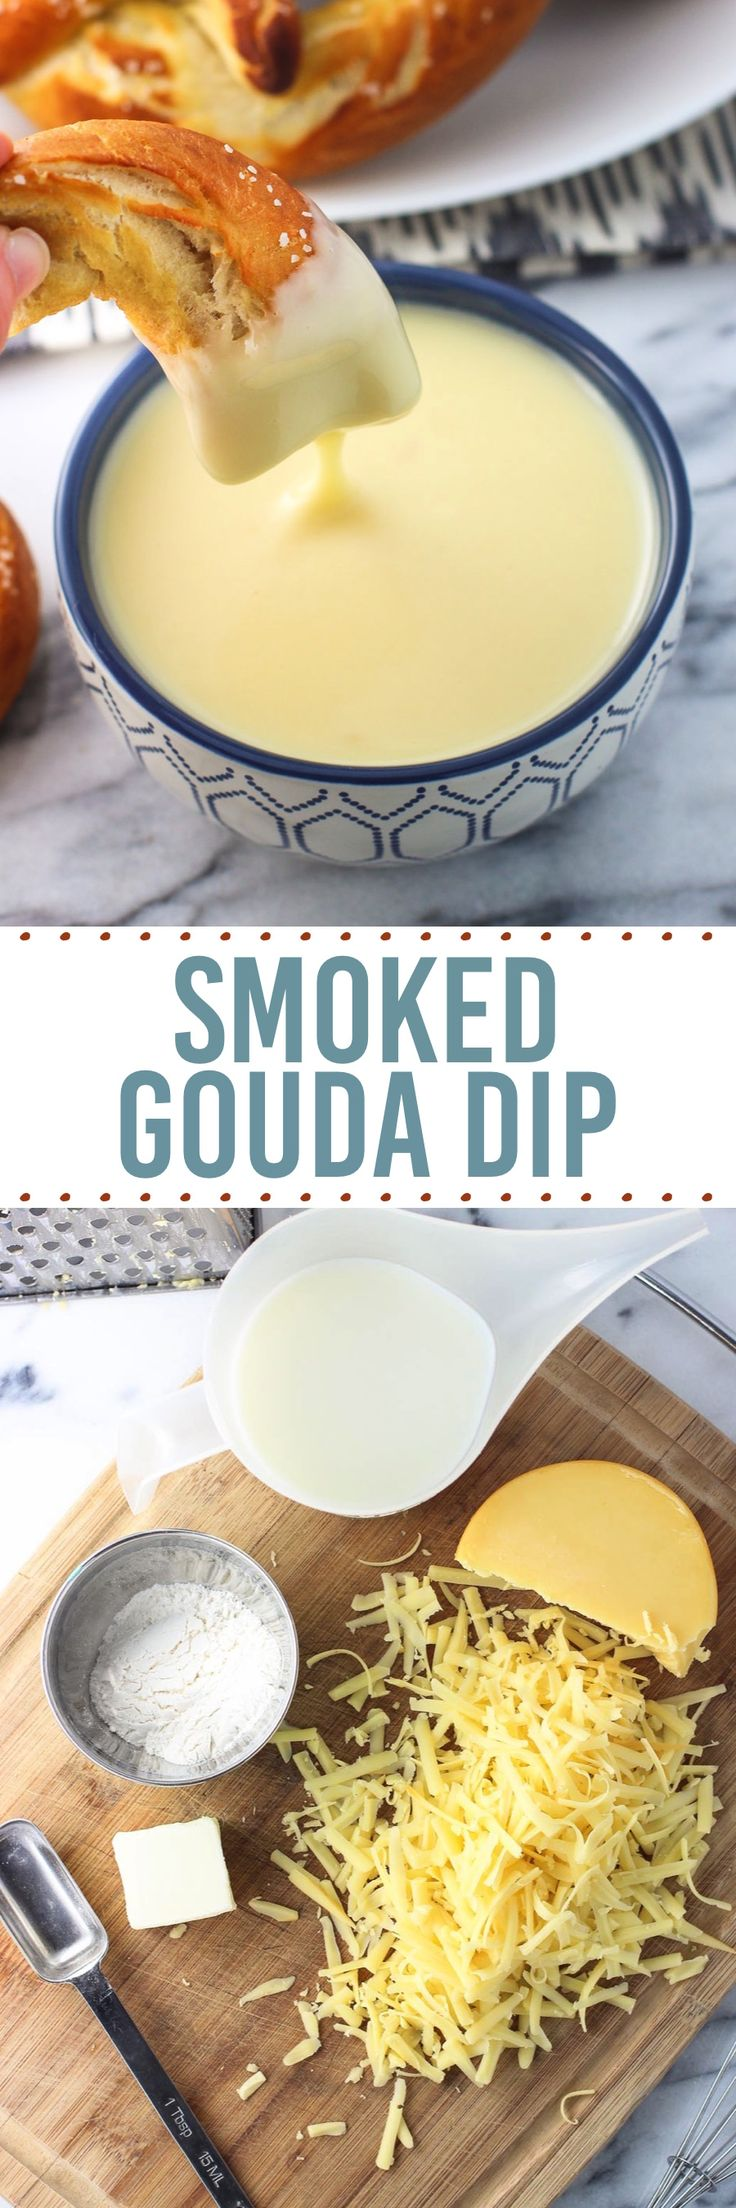 Thick and creamy smoked gouda dip is a four-ingredient dip that's great for dipping homemade pretzels, veggies, and more. It's an easy, impressive recipe!